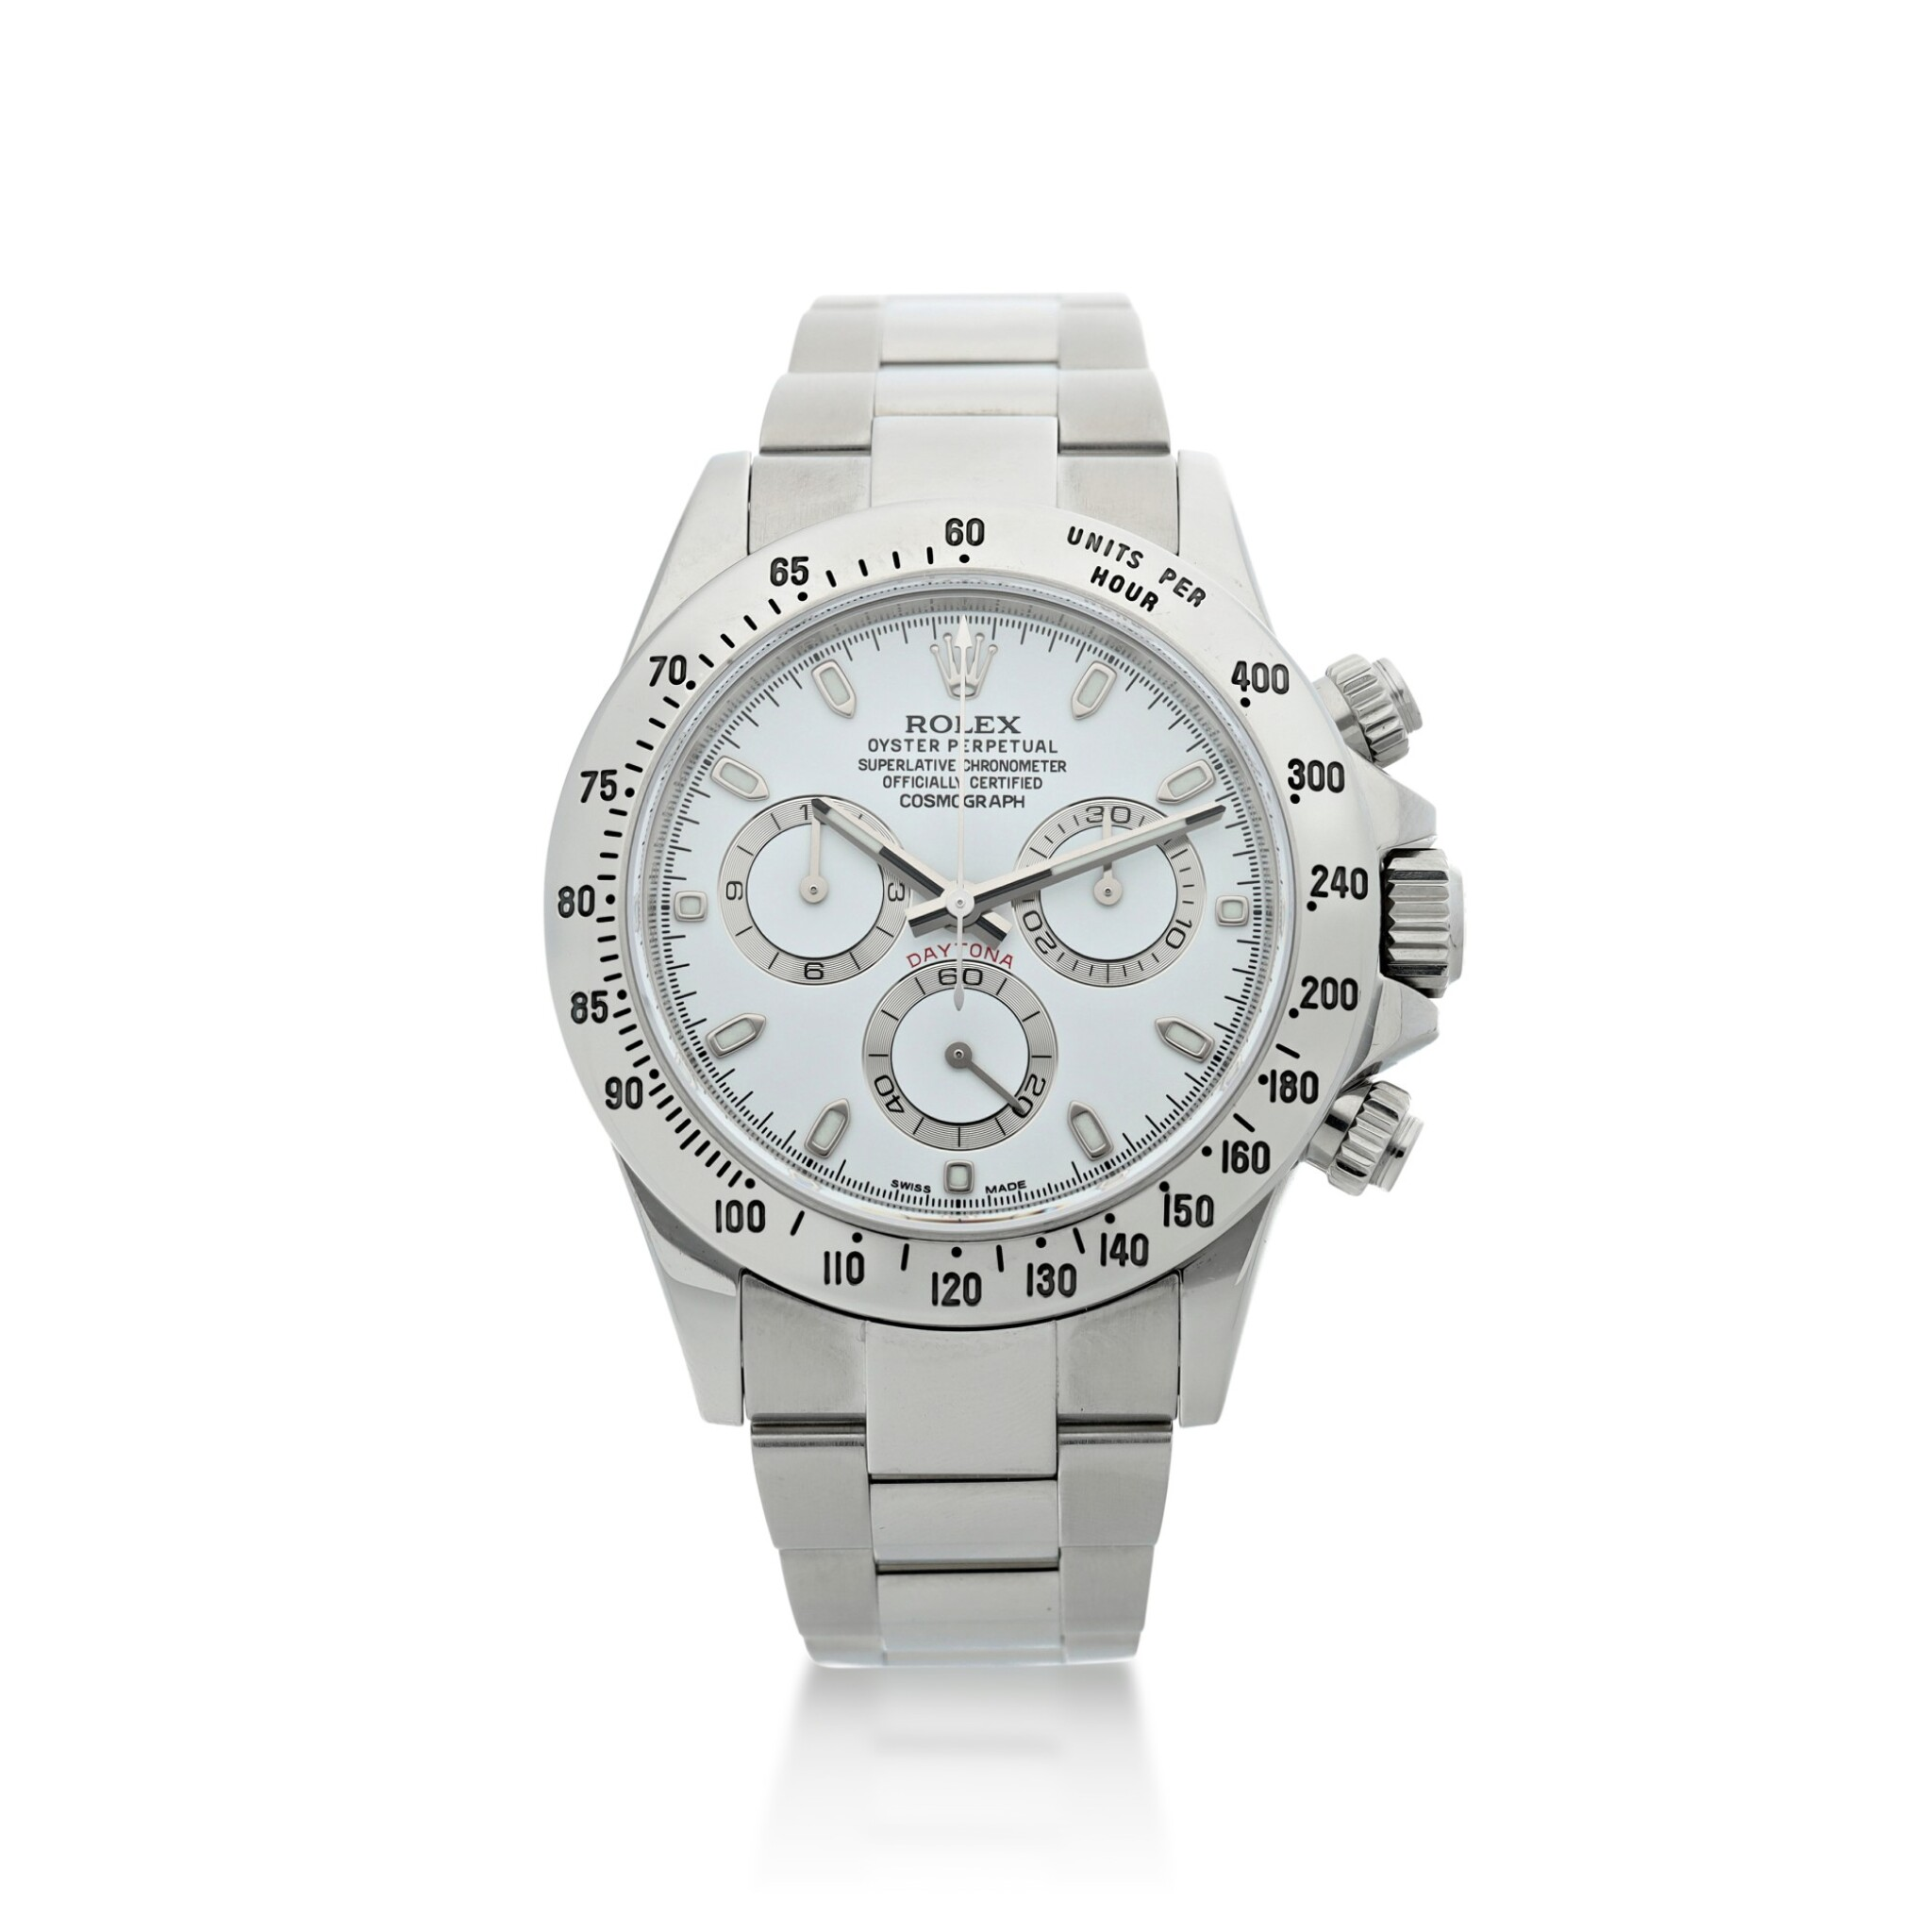 View full screen - View 1 of Lot 4. ROLEX | REFERENCE 116520 DAYTONA A STAINLESS STEEL AUTOMATIC CHRONOGRAPH WRISTWATCH WITH BRACELET, CIRCA 2012.